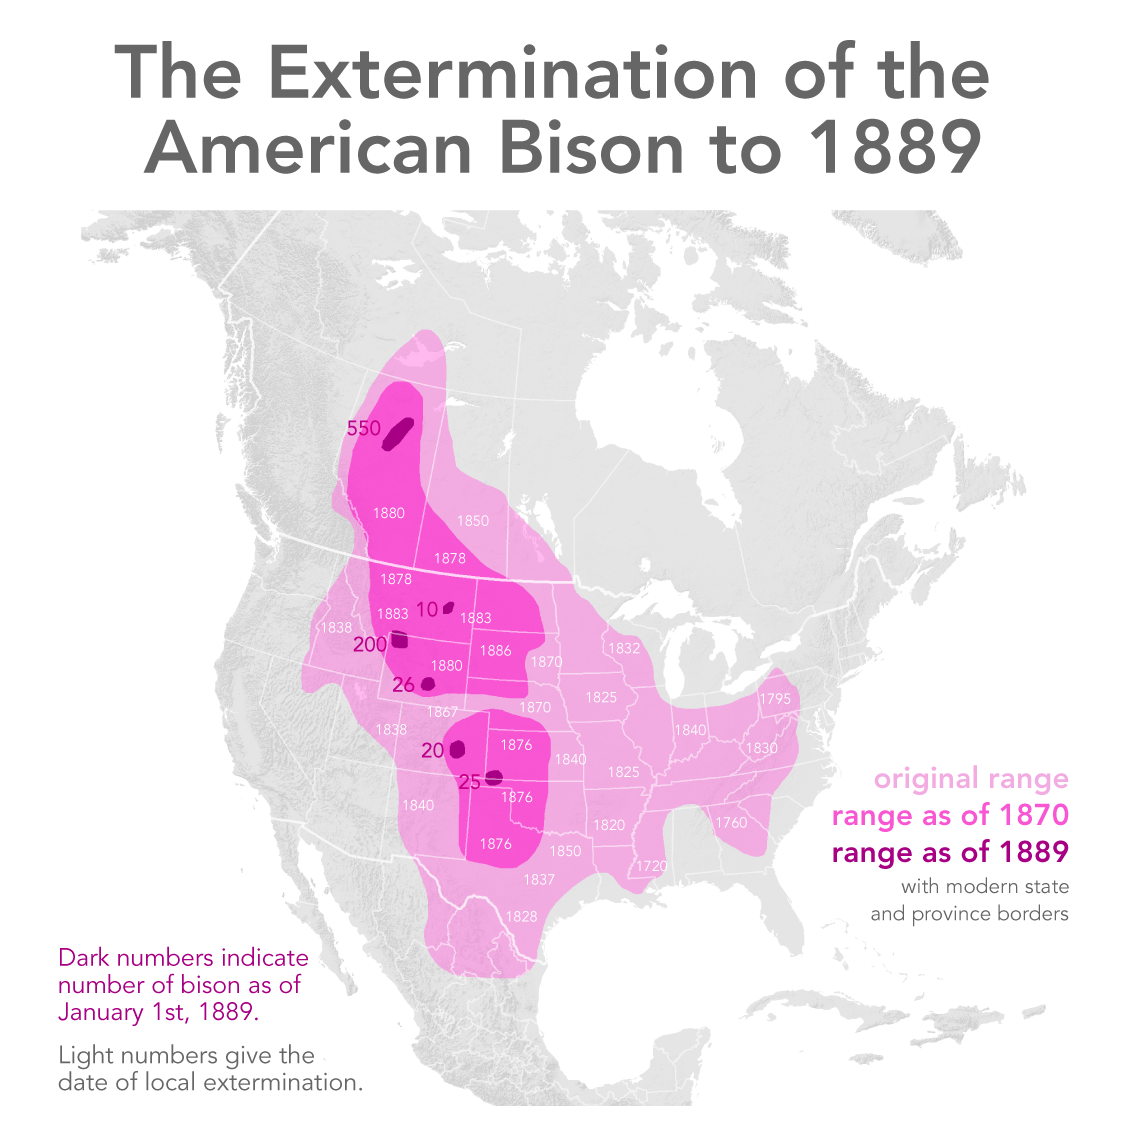 file extermination of bison to 1889 png wikimedia commons